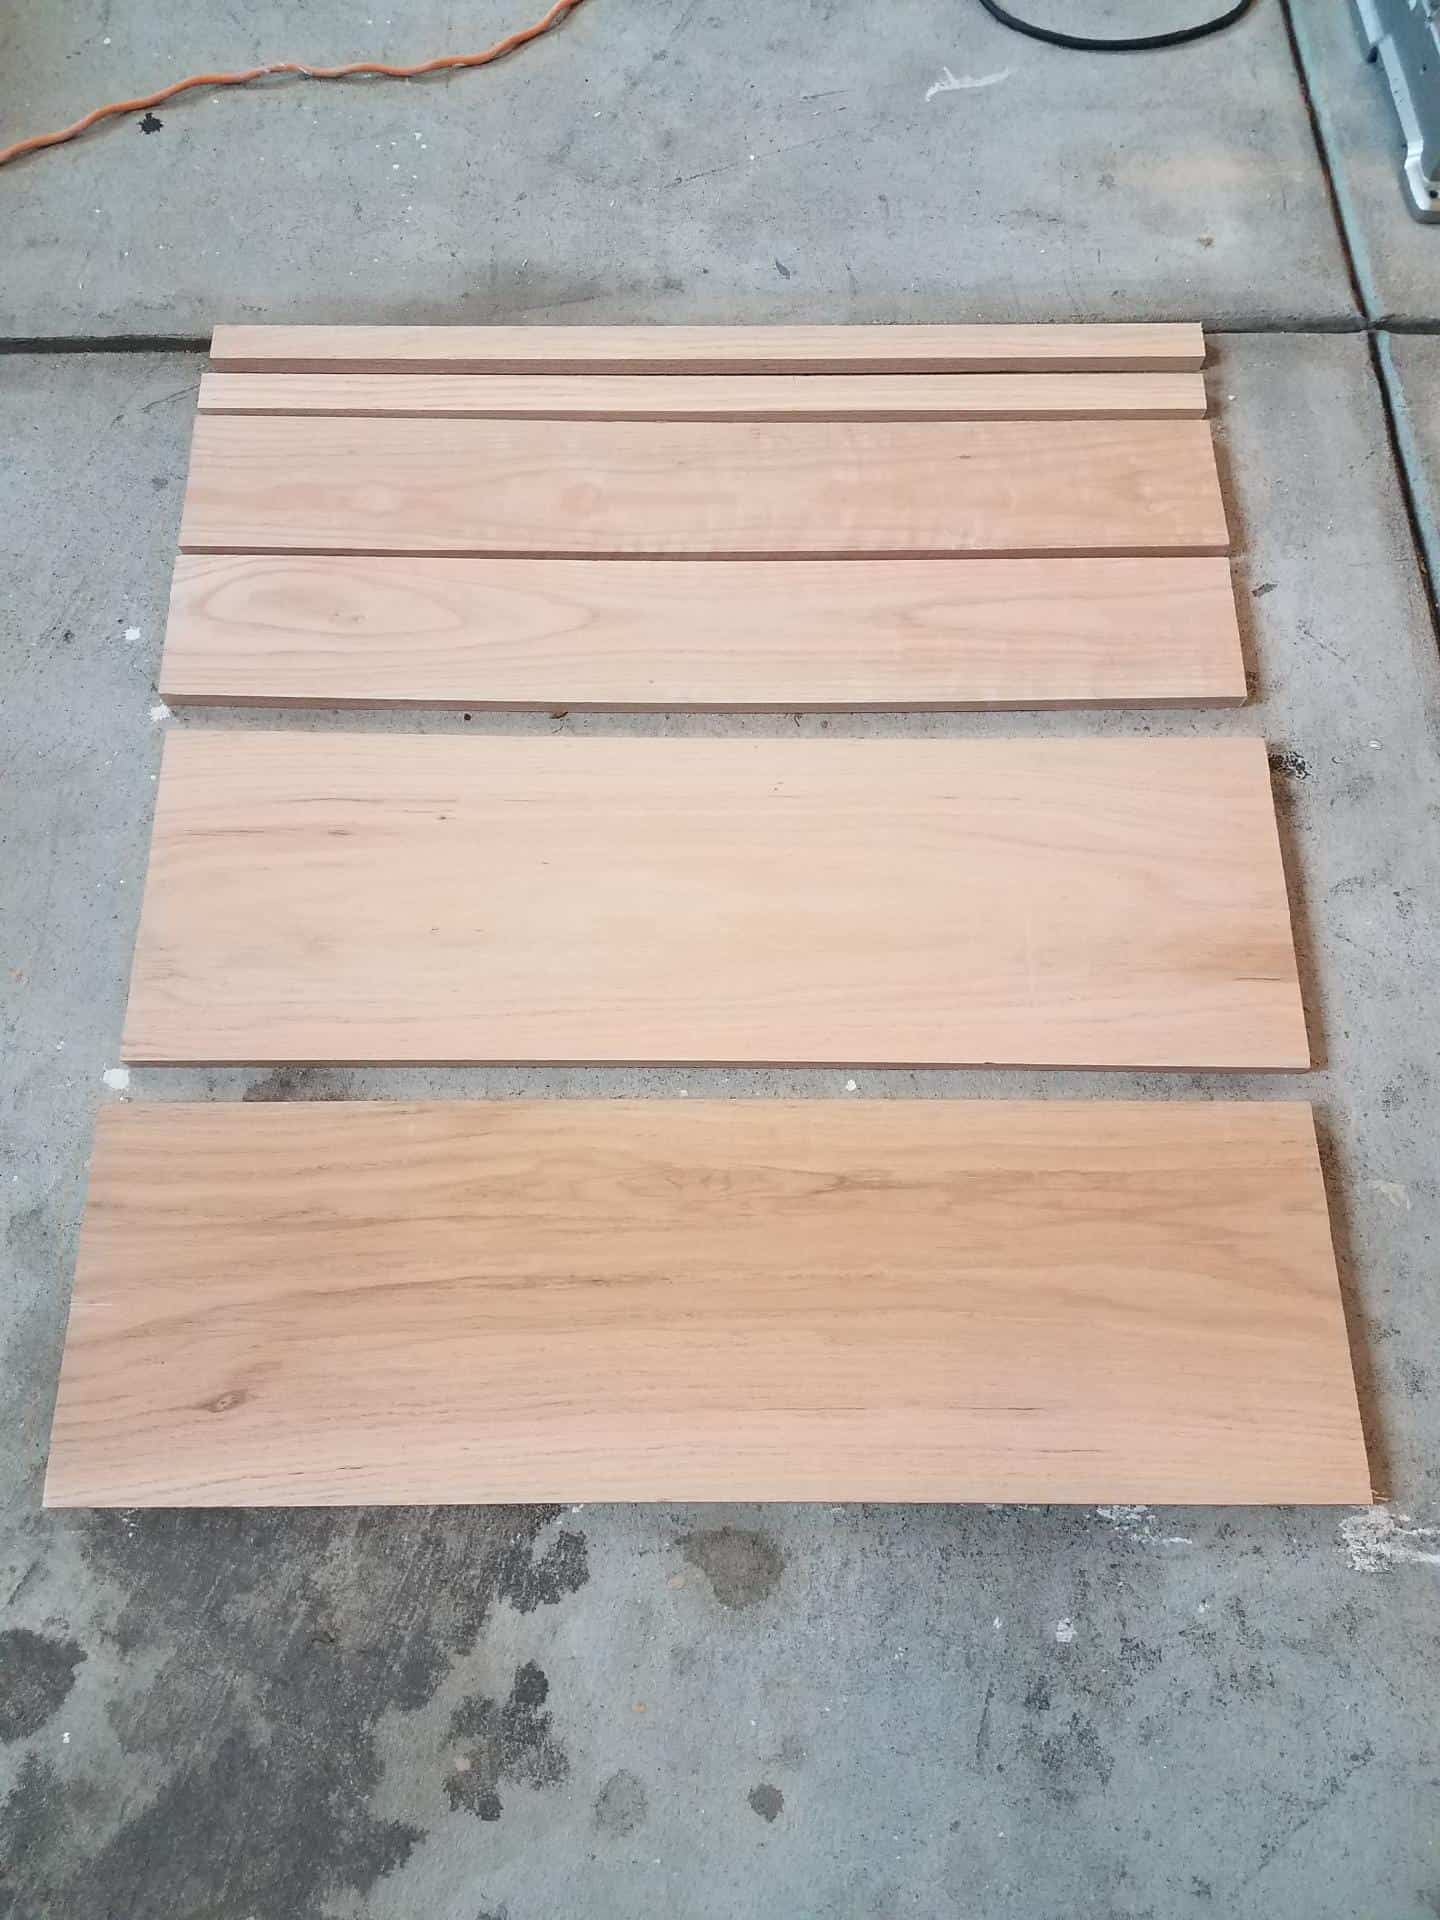 DIY Oak Wall Shelves Free Plans